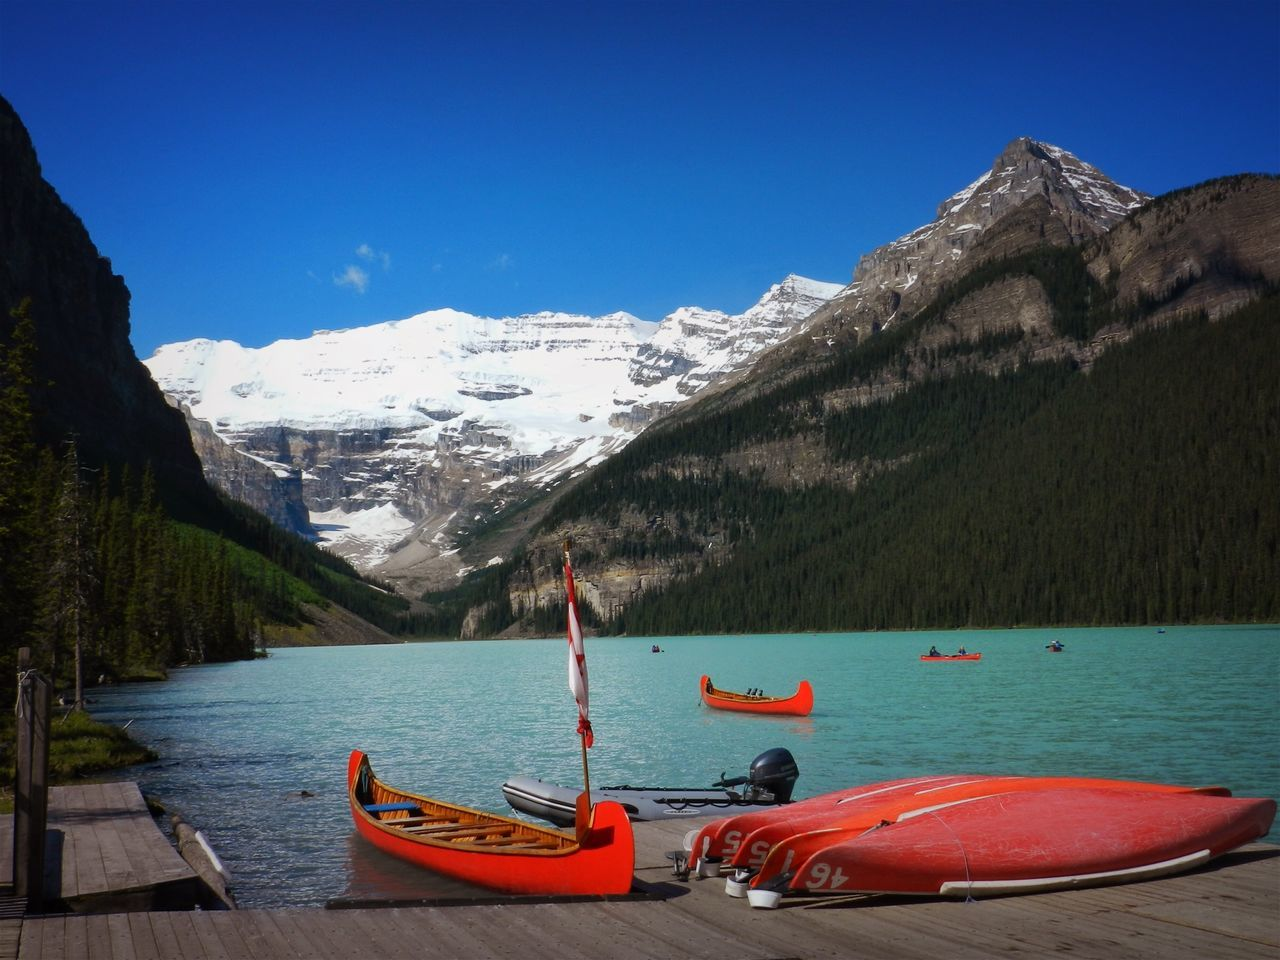 Alberta, Canada Beauty In Nature Blue Canada Canoes Clear Sky Day Lake Mountain Mountain Range Nature Nautical Vessel No People Outdoors Scenics Sky Snow Snowcapped Mountain Tranquil Scene Tranquility Water Winter